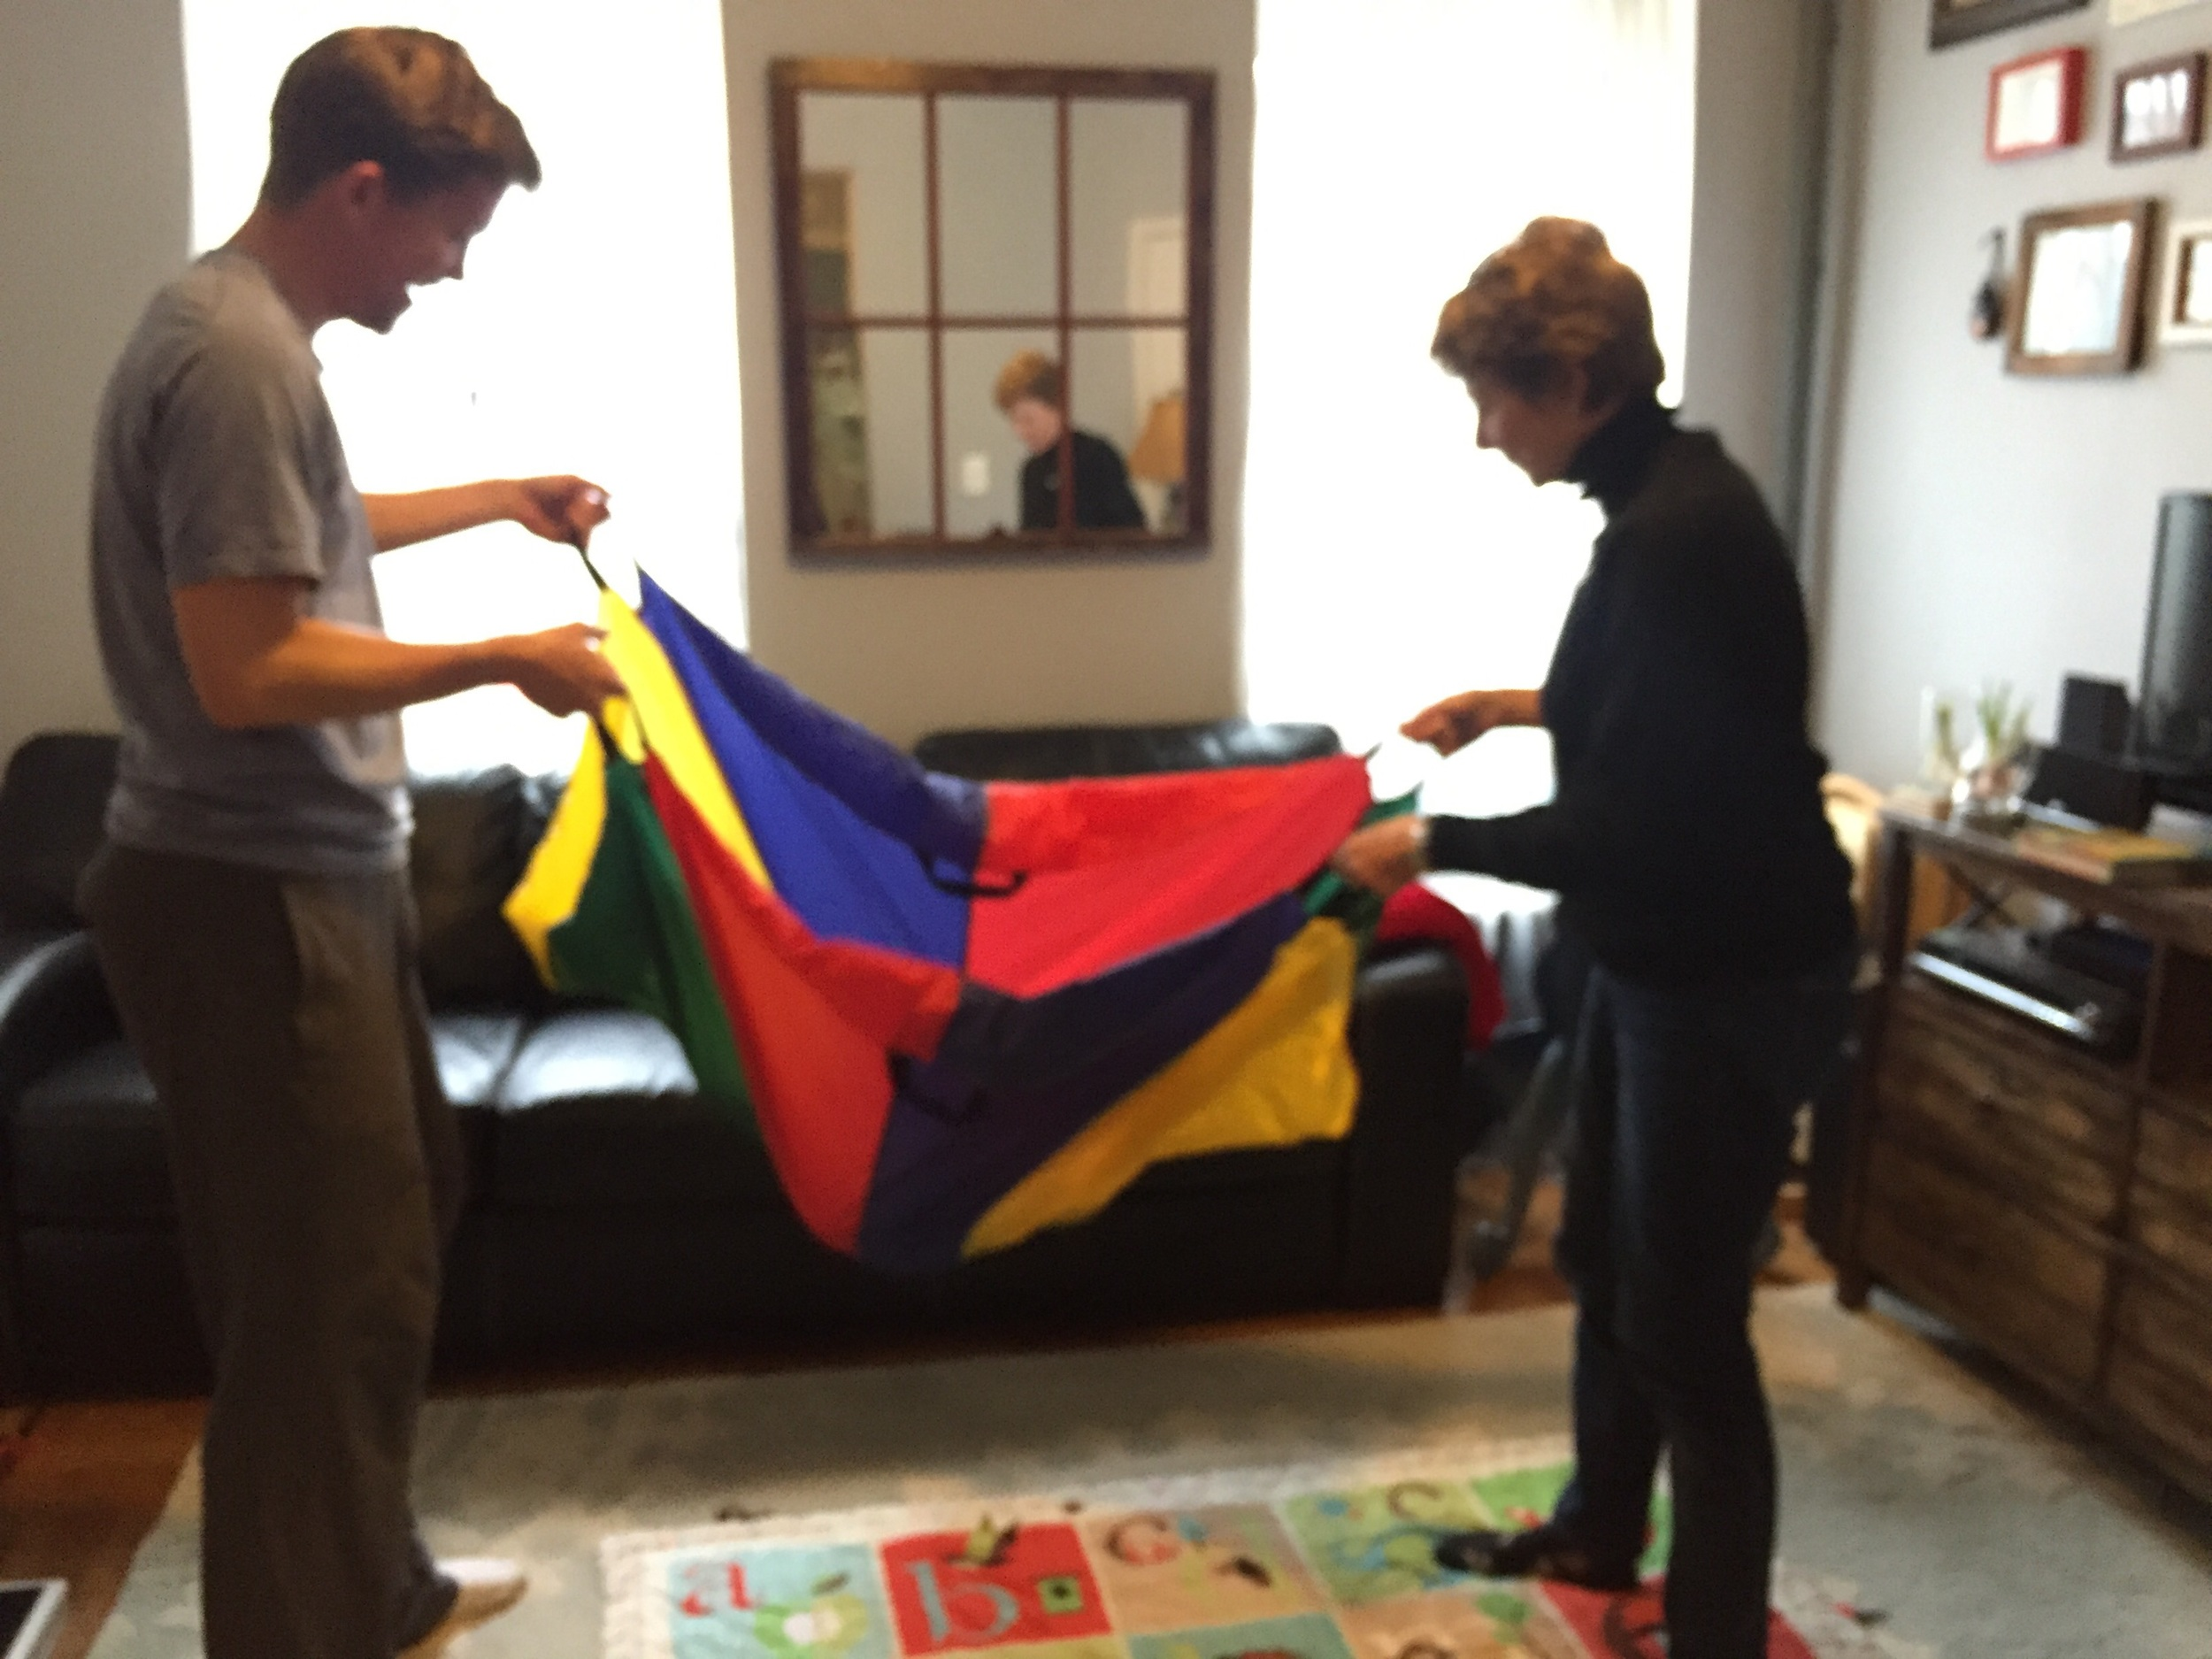 Using a parachute at therapy.